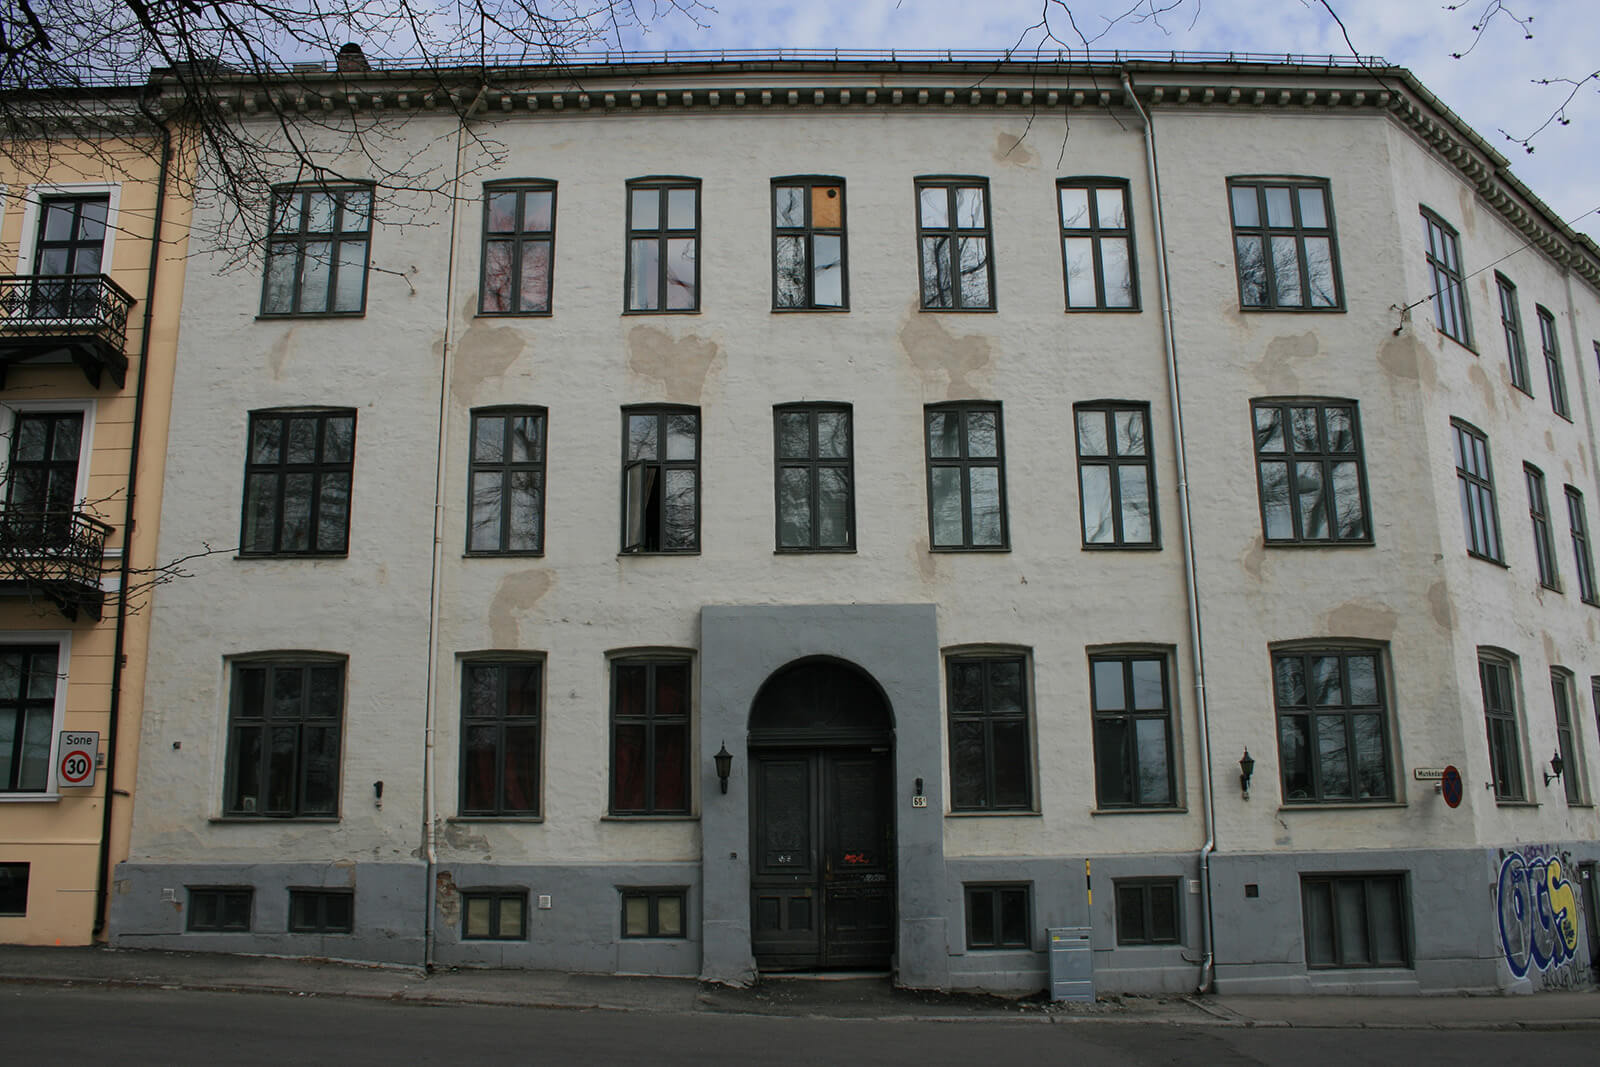 Free entrance to the Museum of Magic in Oslo, Norway when you attend one of the Sunday magic shows